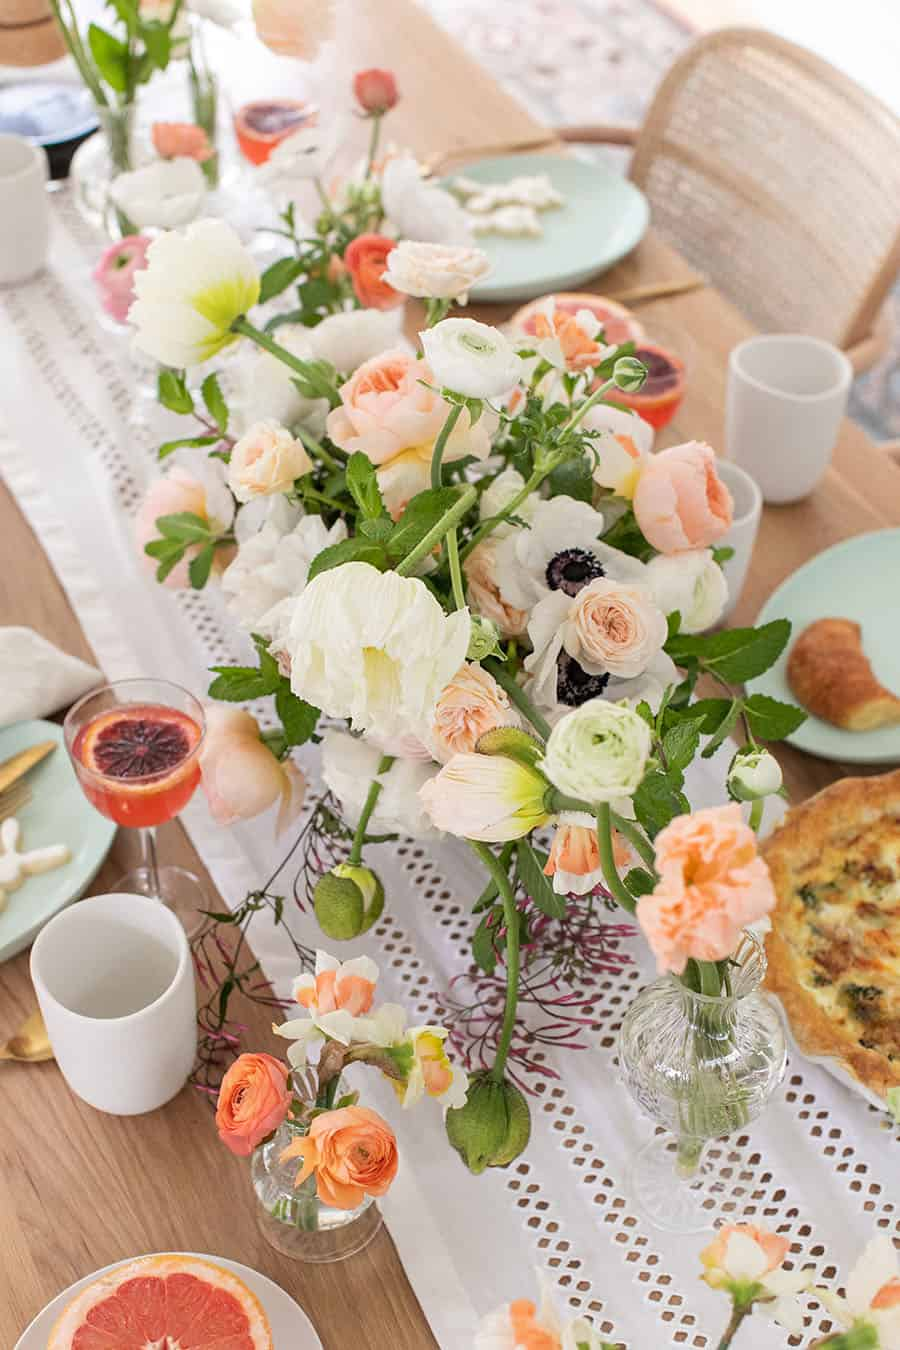 Stunning flowers on a table setting for Easter brunch.